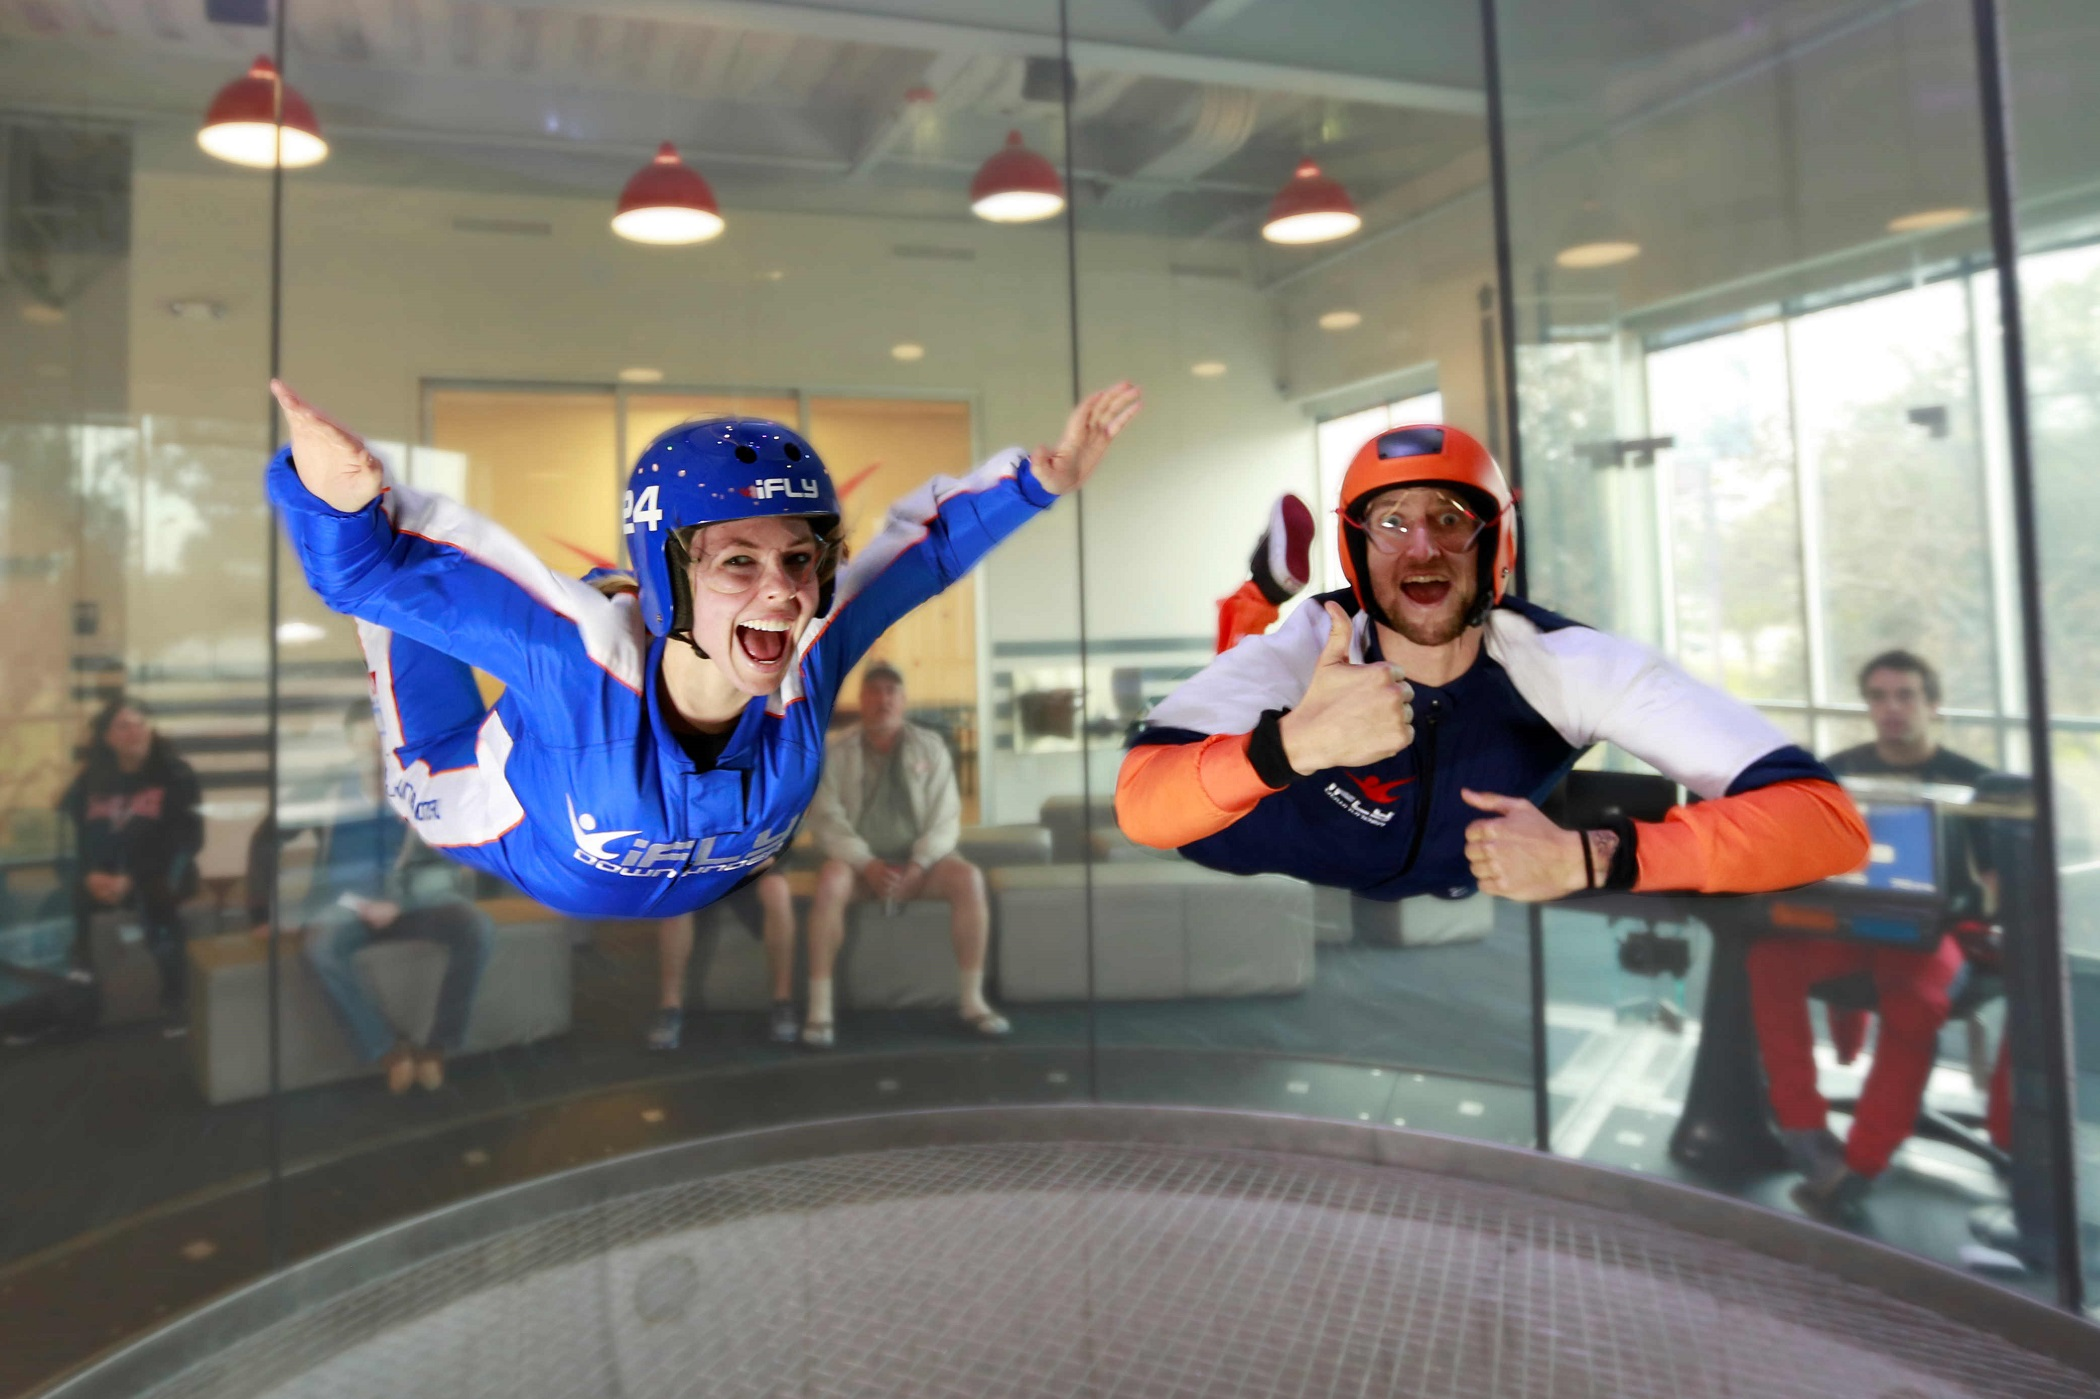 10 Things To Do Differently At Sentosa This June Holidays Kkday Blog Ifly Singapore Adult Try Defying Gravity Today